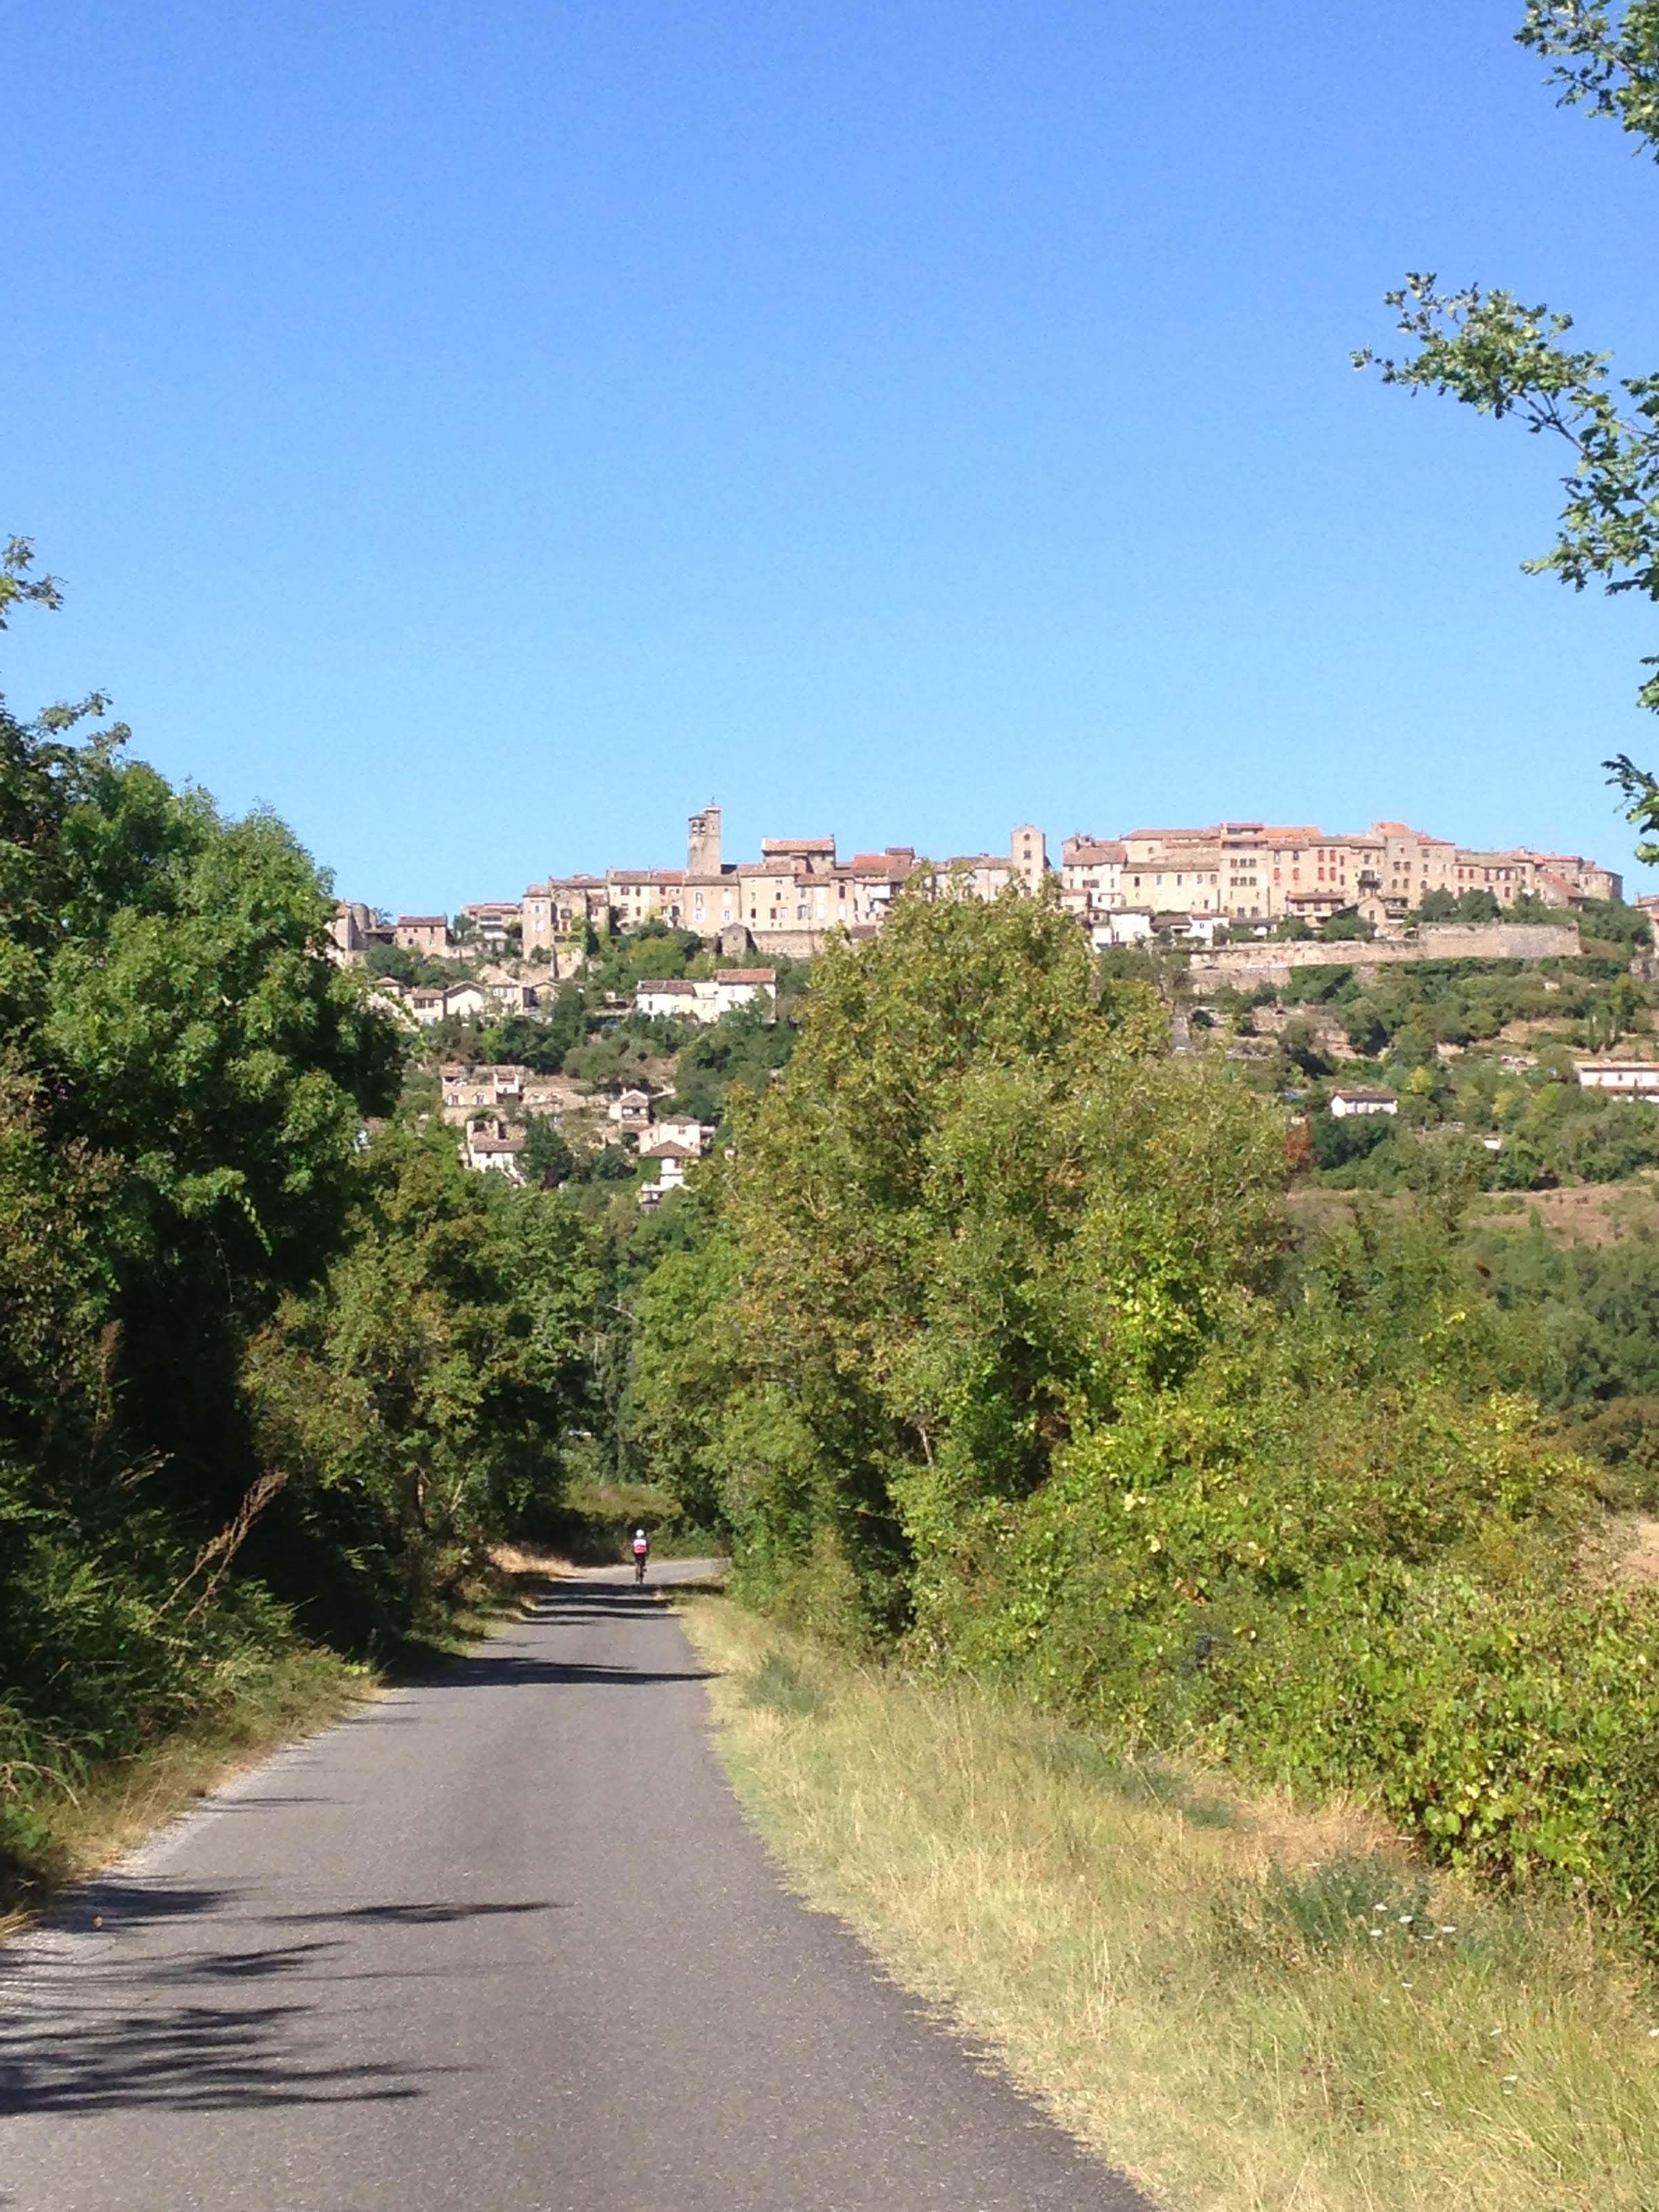 Hilltop towns in south of France